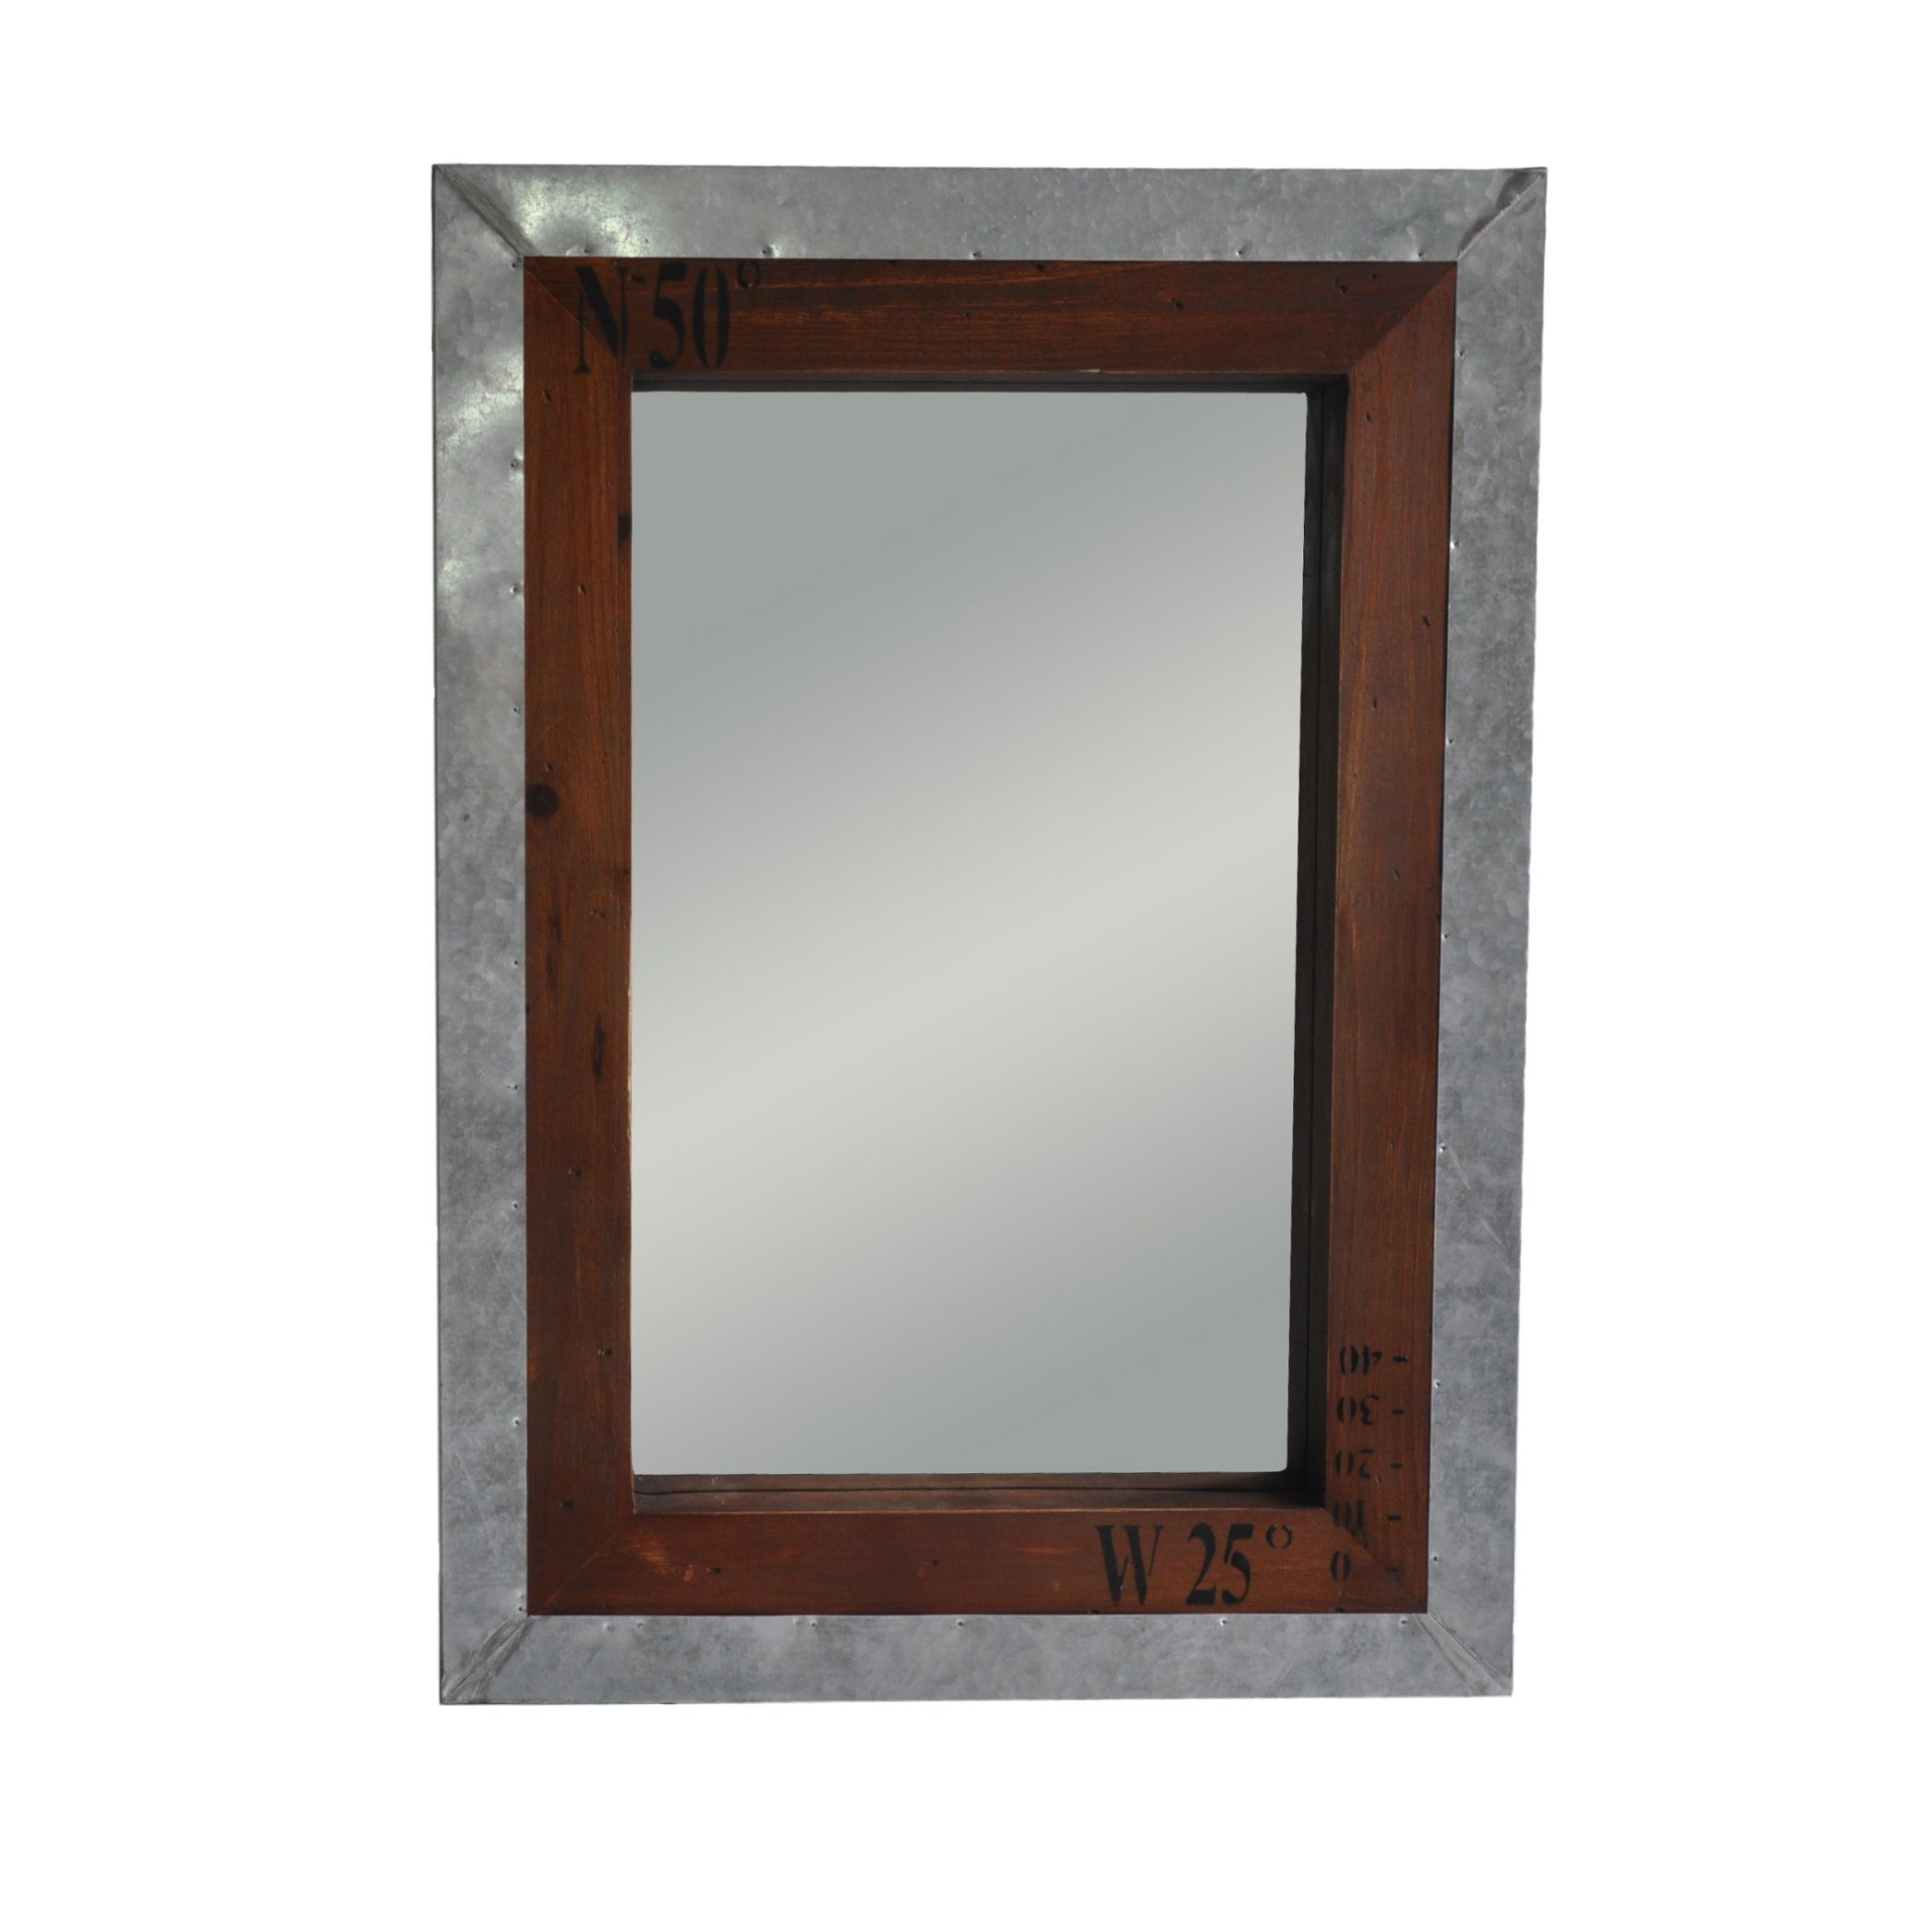 Trent Austin Design Wall Mirror With Metal And Wood Frame